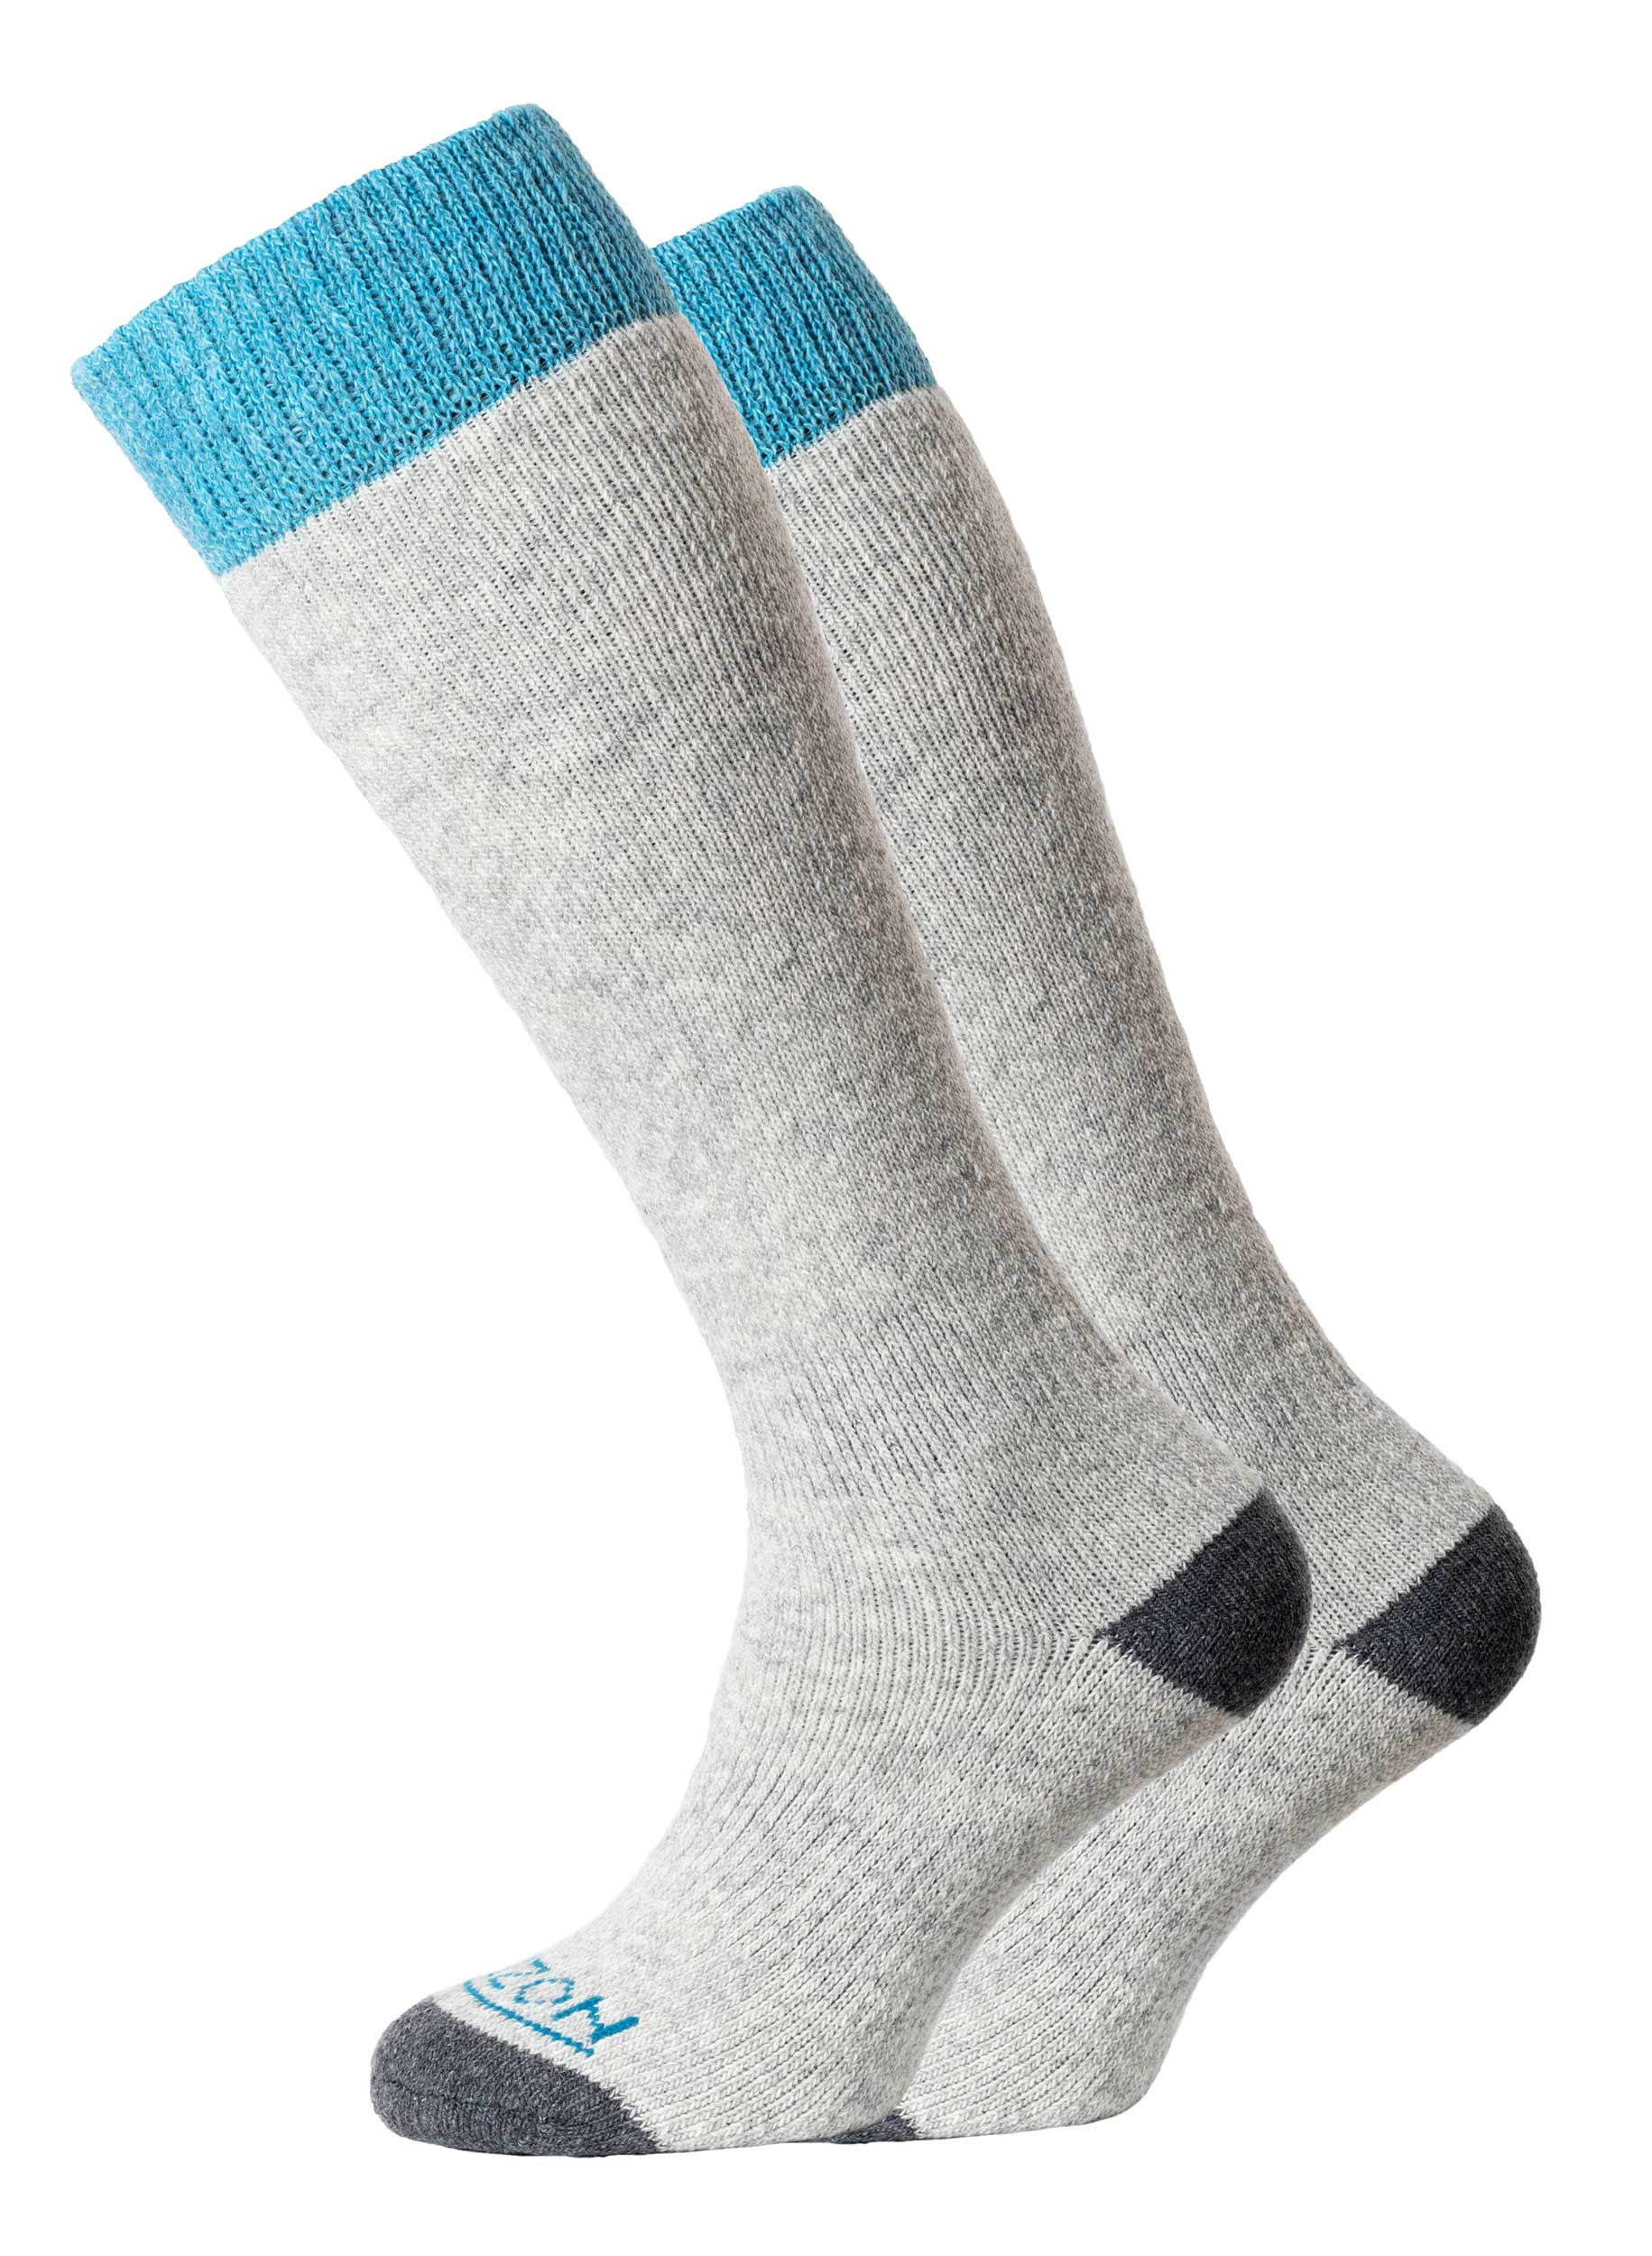 Winter Sport Merino 2pk Grey/Teal